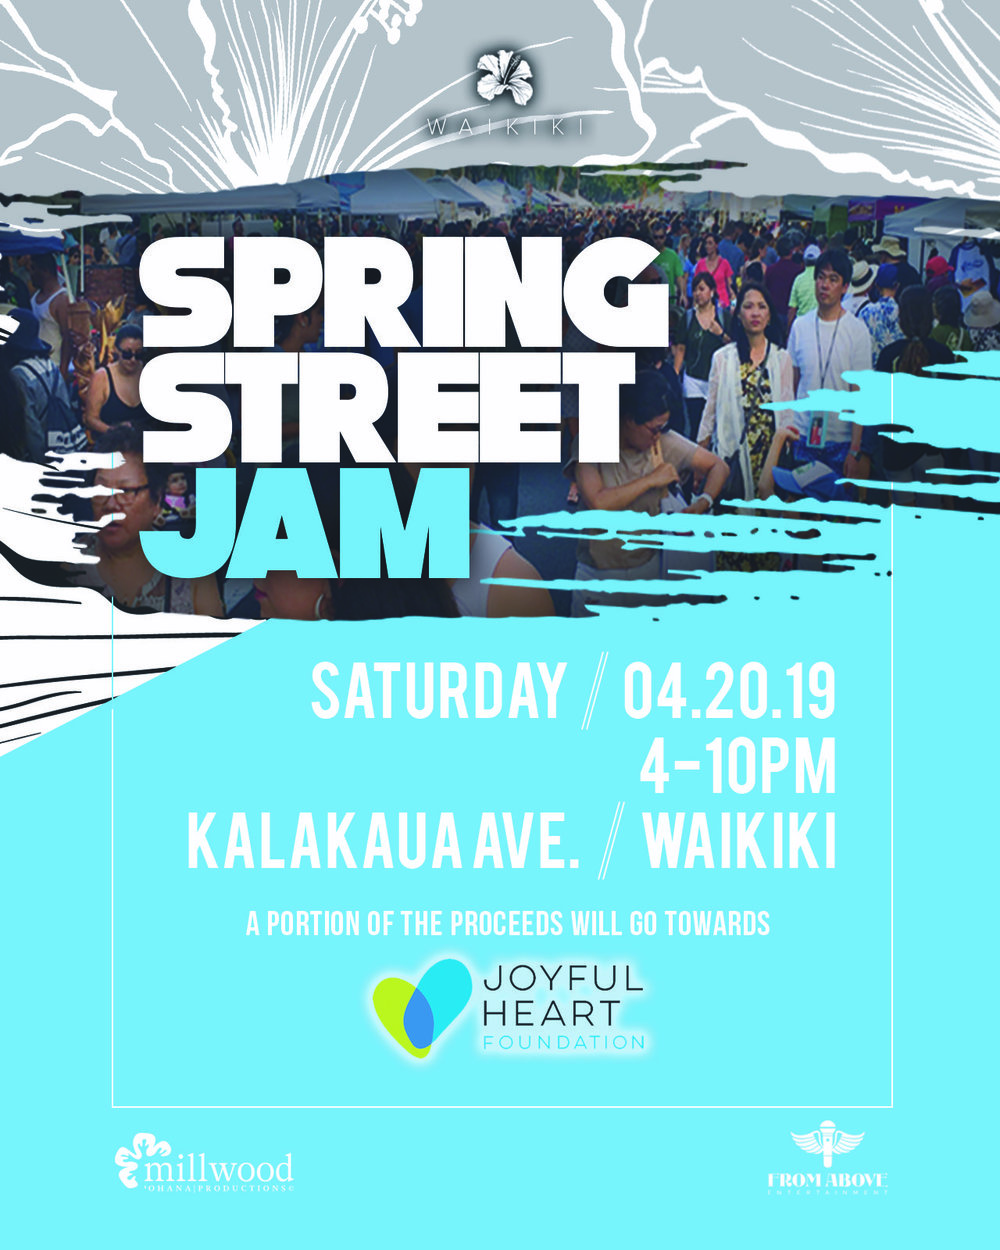 Join us as we shut down Kalakaua Avenue for our Waikiki Block Festivals! Enjoy ono food, shopping, handmade arts & crafts, and rides from local vendors. Come and support our local businesses! Admission to all of our block festivals is FREE to the public and perfect for the whole family! As always, a portion of our festivals will go towards local nonprofit organizations.  Source:  https://www.millwoodohanaproductions.com/